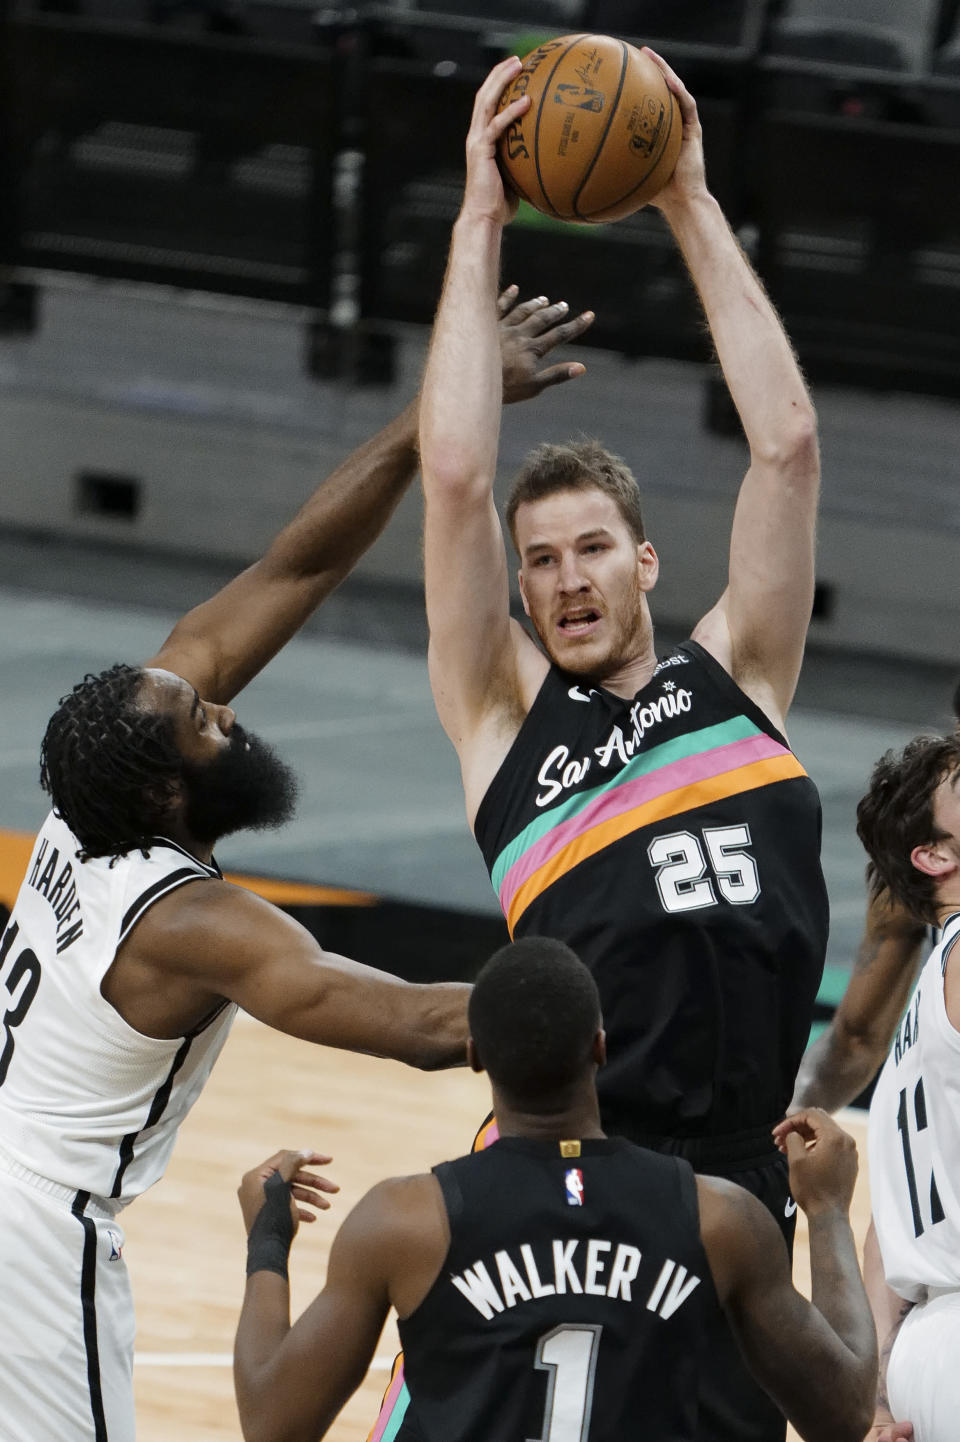 San Antonio Spurs' Jakob Poeltl (25) fights for the rebound against Brooklyn Nets' James Harden, left, during the first half of an NBA basketball game, Monday, March 1, 2021, in San Antonio. (AP Photo/Darren Abate)